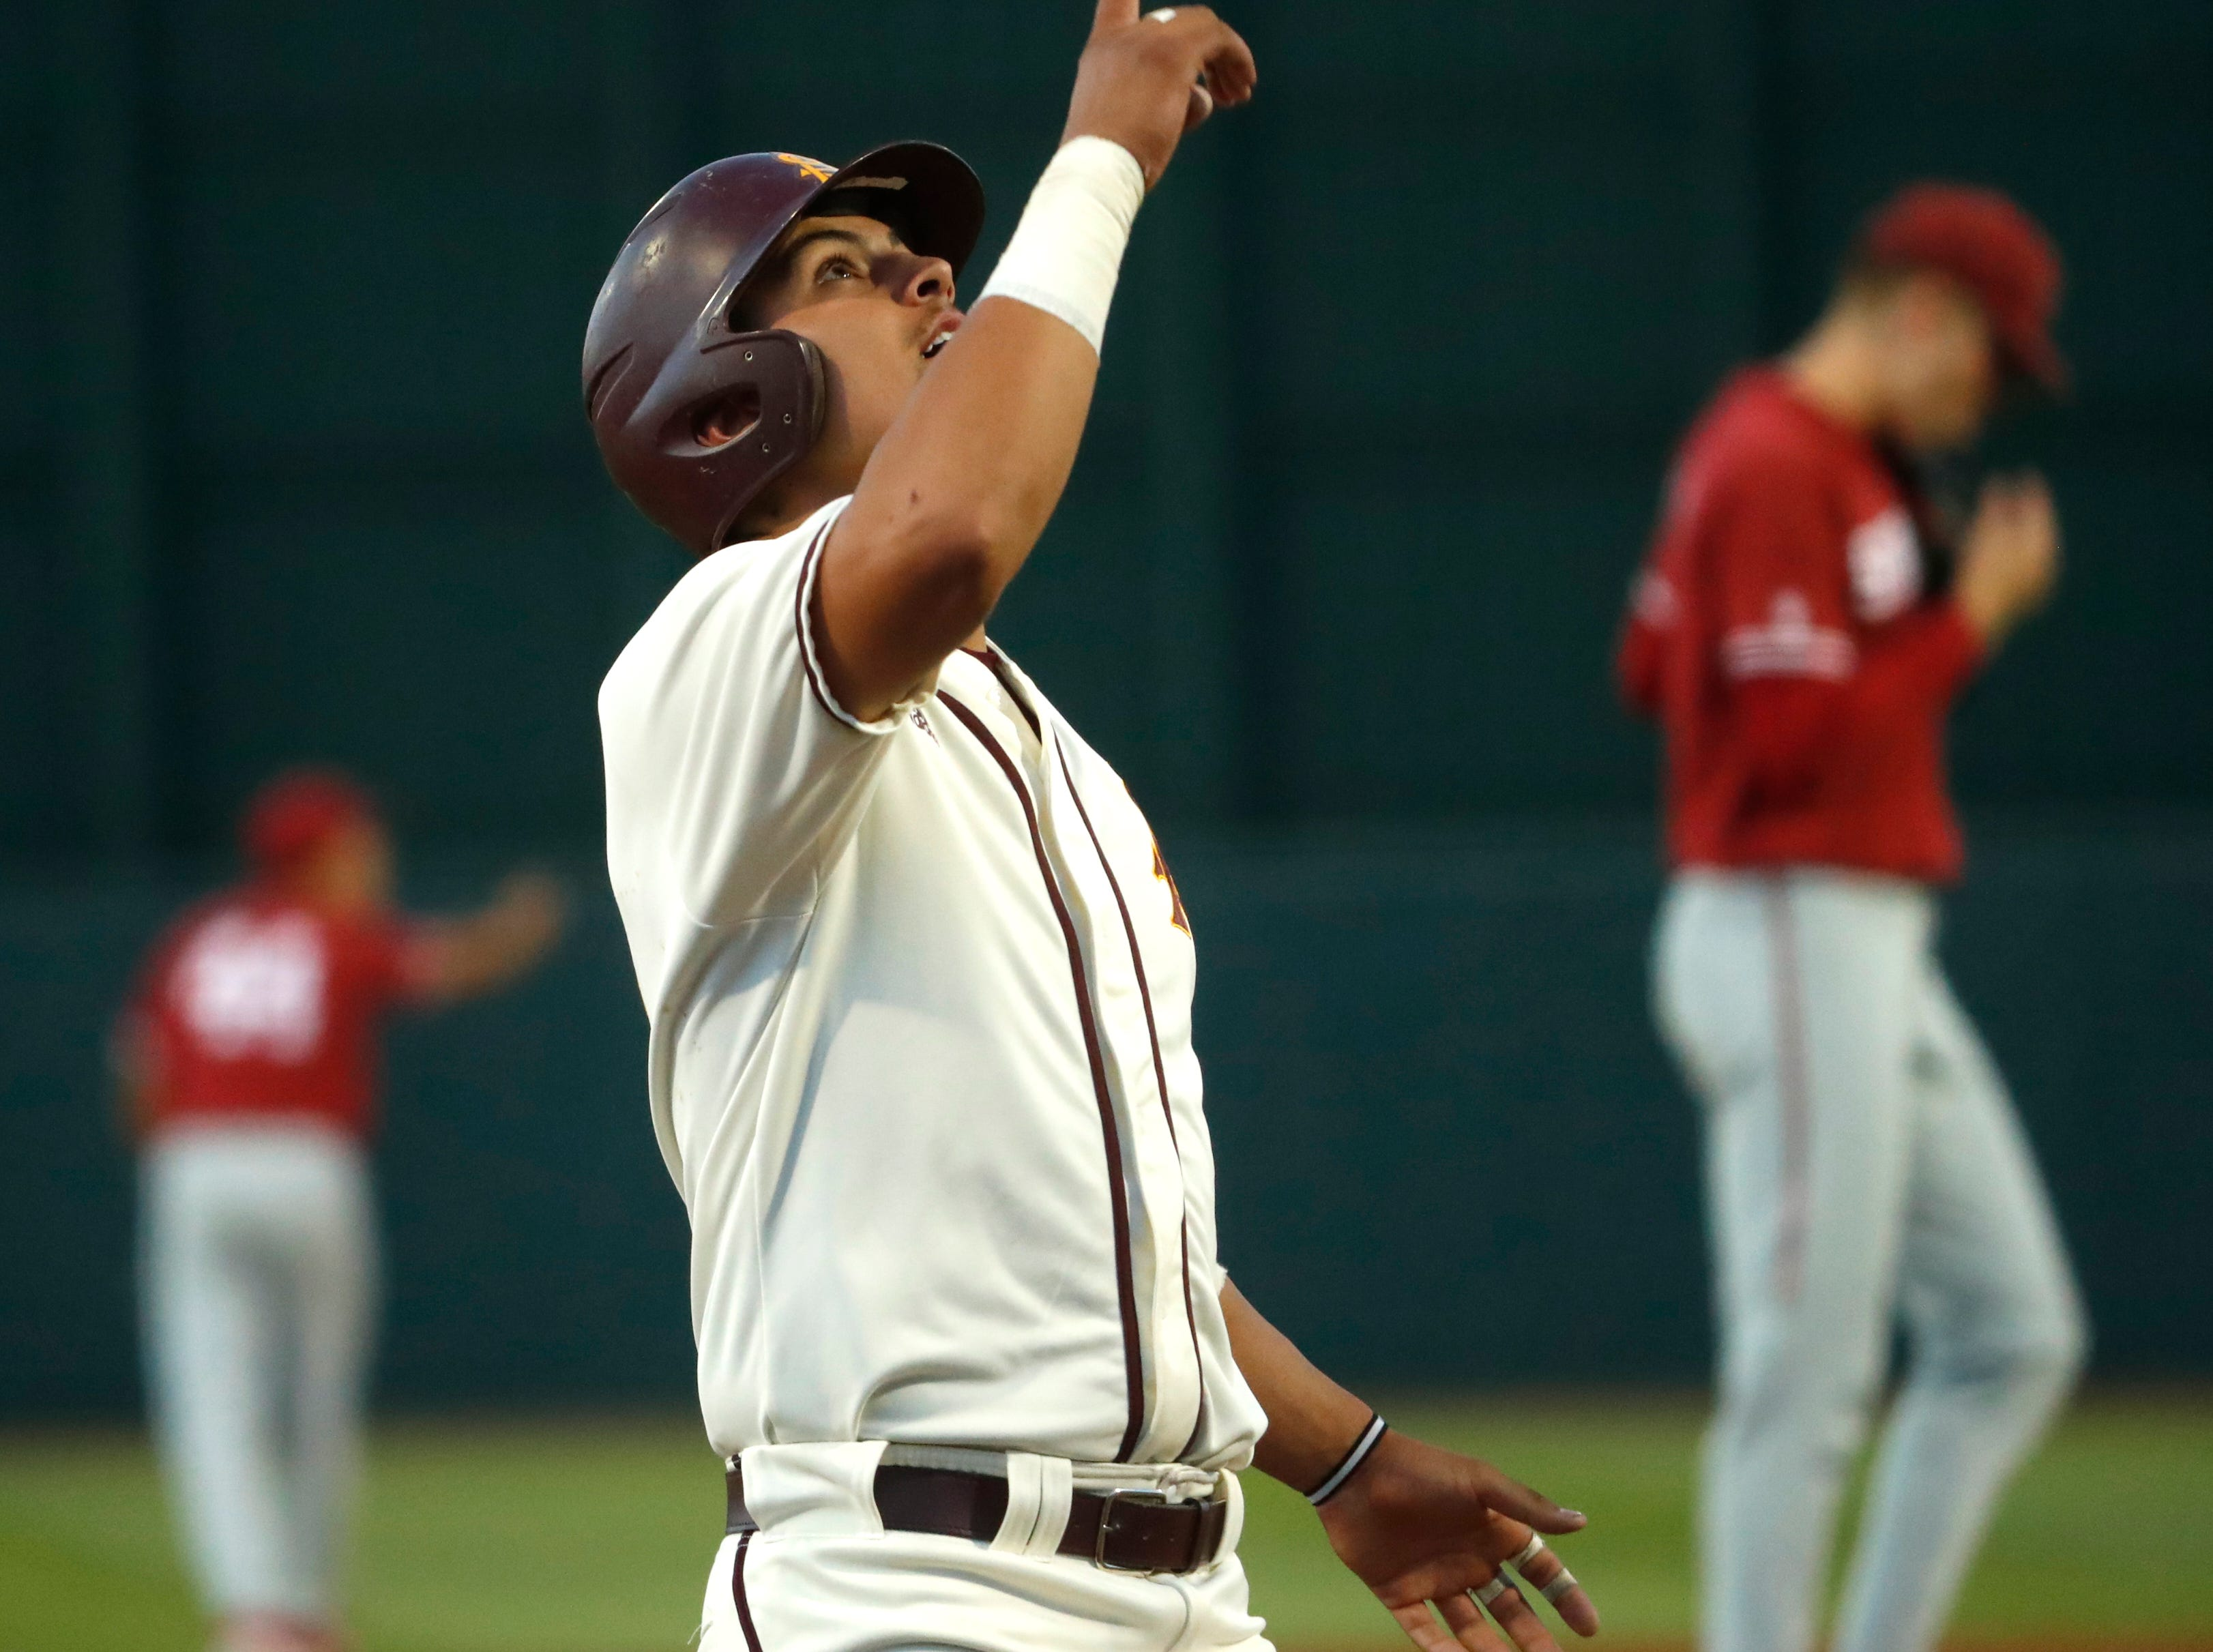 ASU's Carter Aldrete (21) celebrates at home after hitting a home run against Stanford during the sixth inning at Phoenix Municipal Stadium in Phoenix, Ariz. on May 24, 2019.